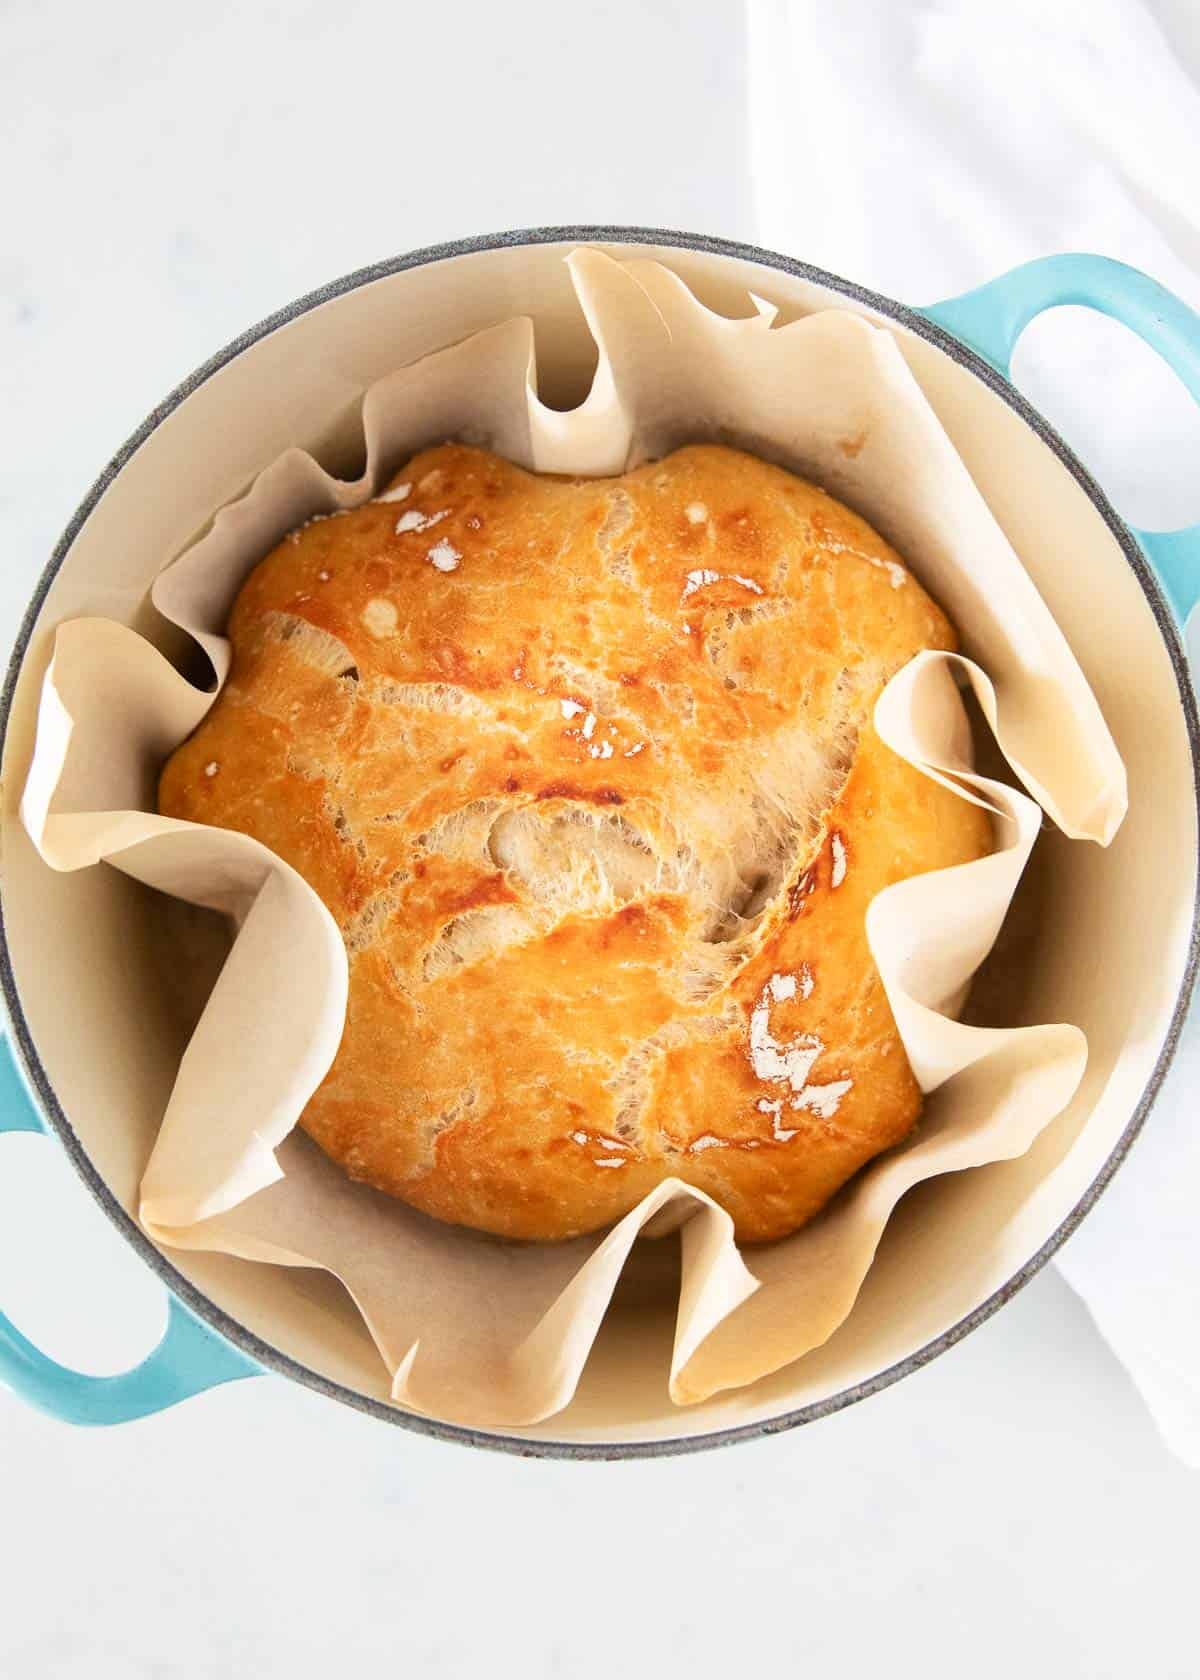 3 Ingredient Dutch Oven Bread No Knead I Heart Naptime